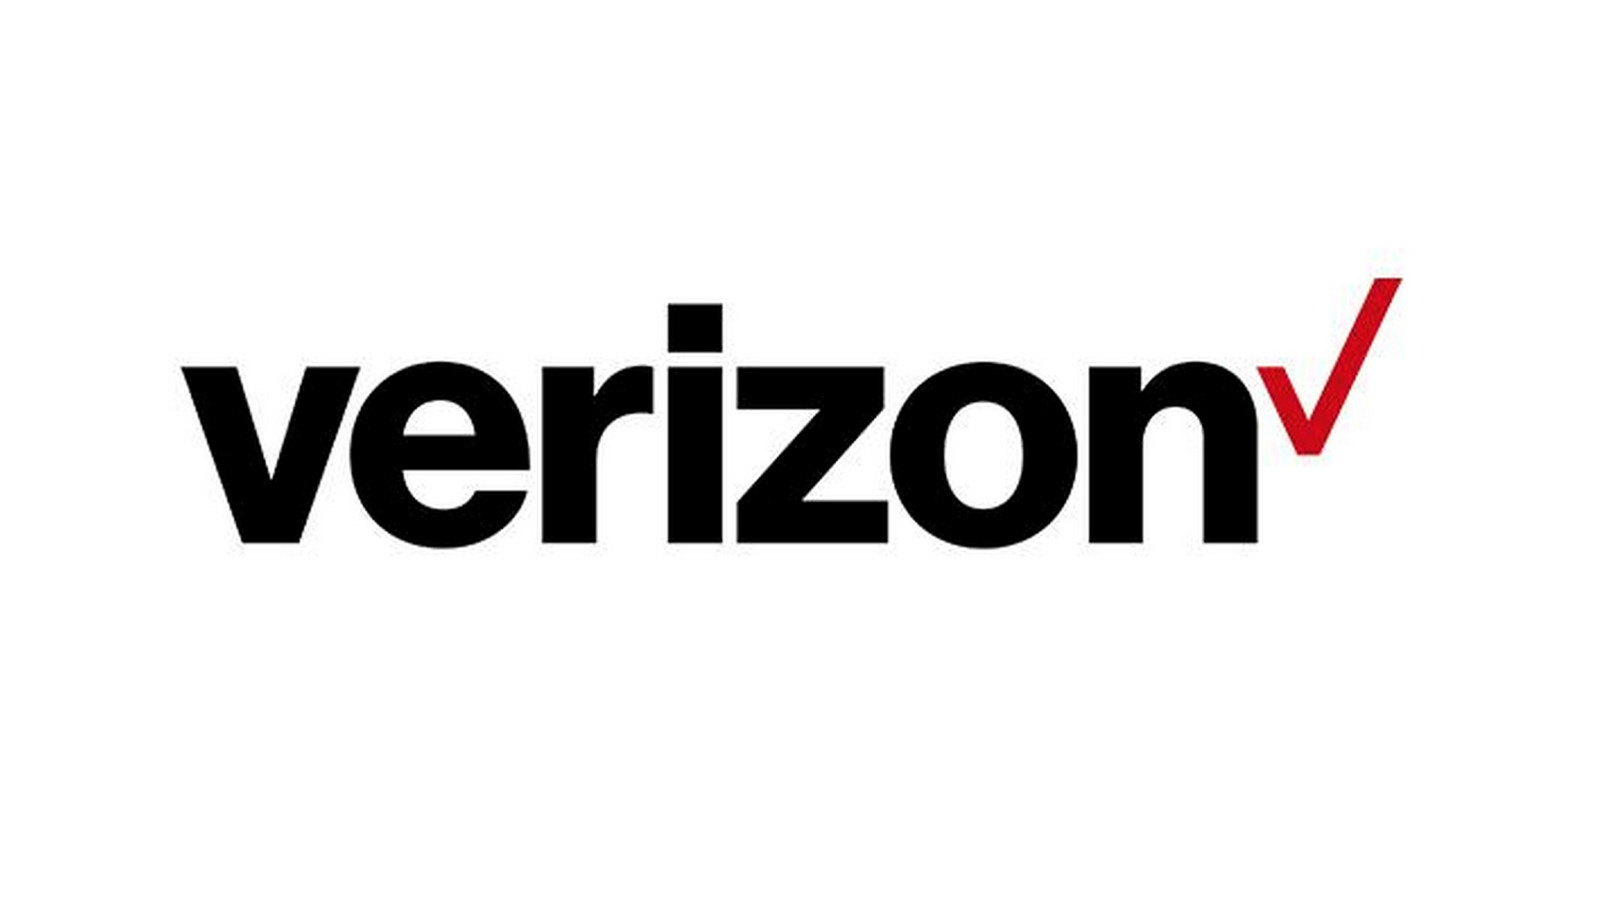 Verizon Wins Yahoo Sale and Directs Attention to Digital Media